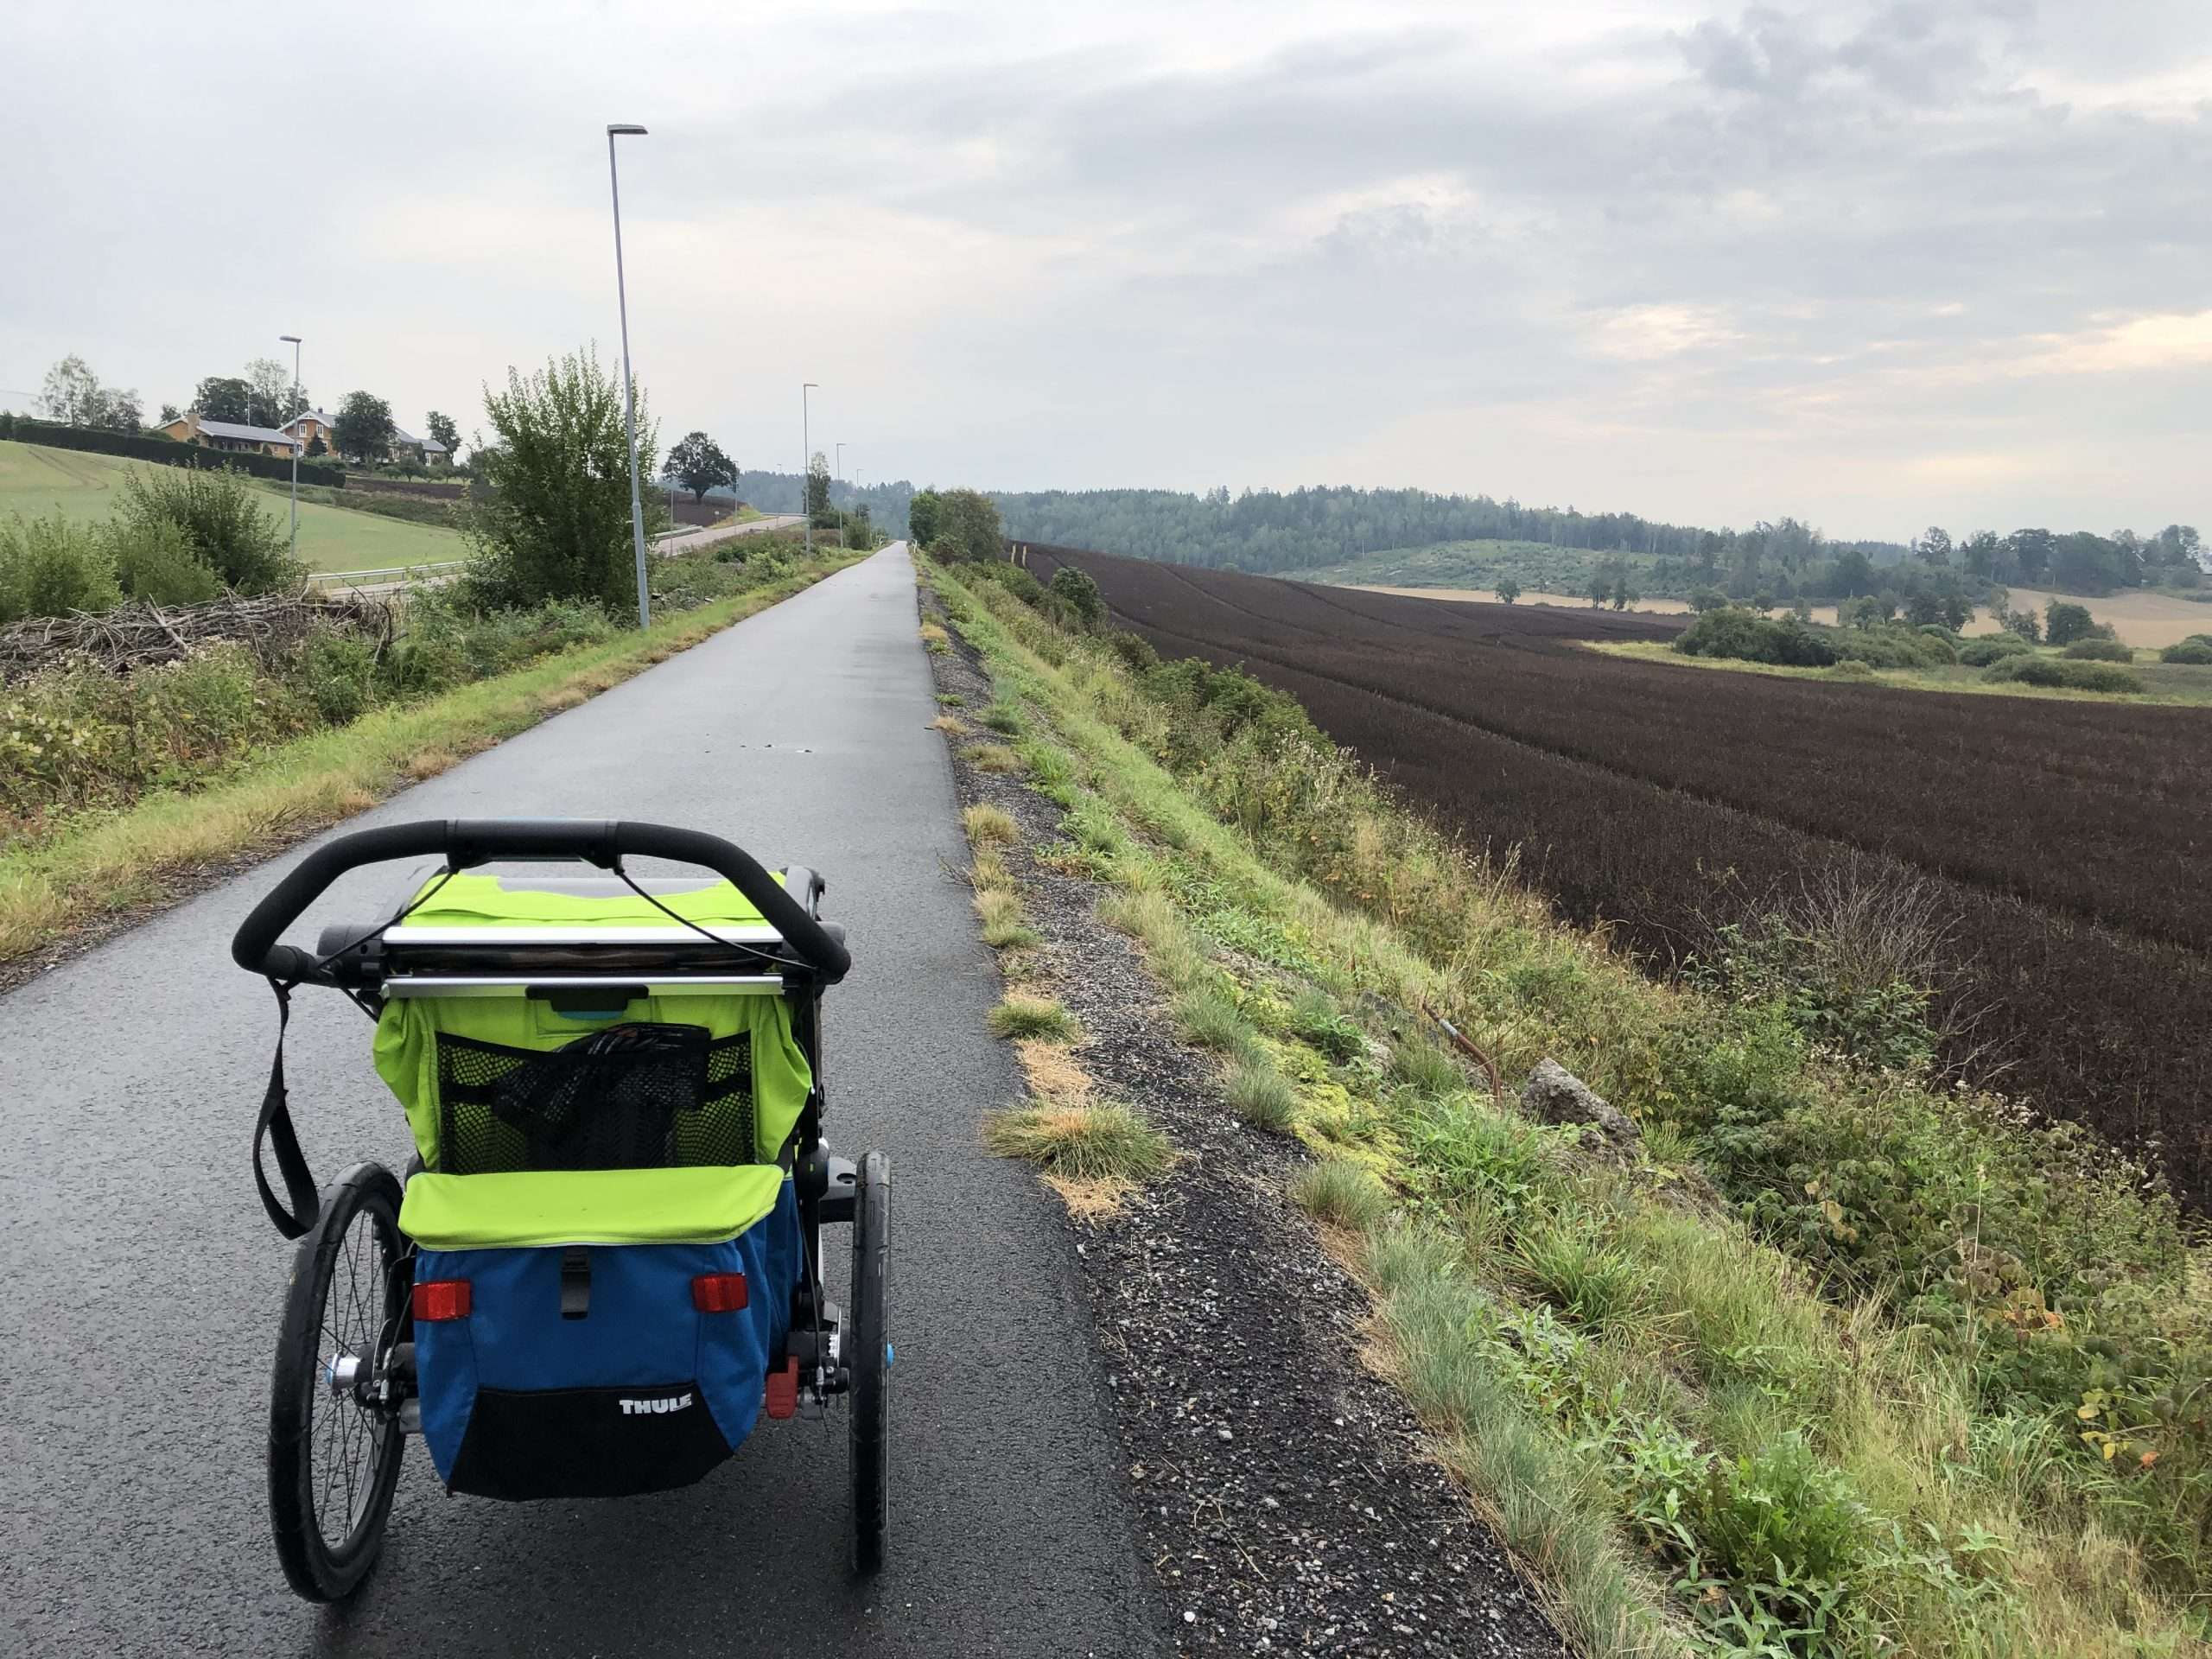 Running with a stroller